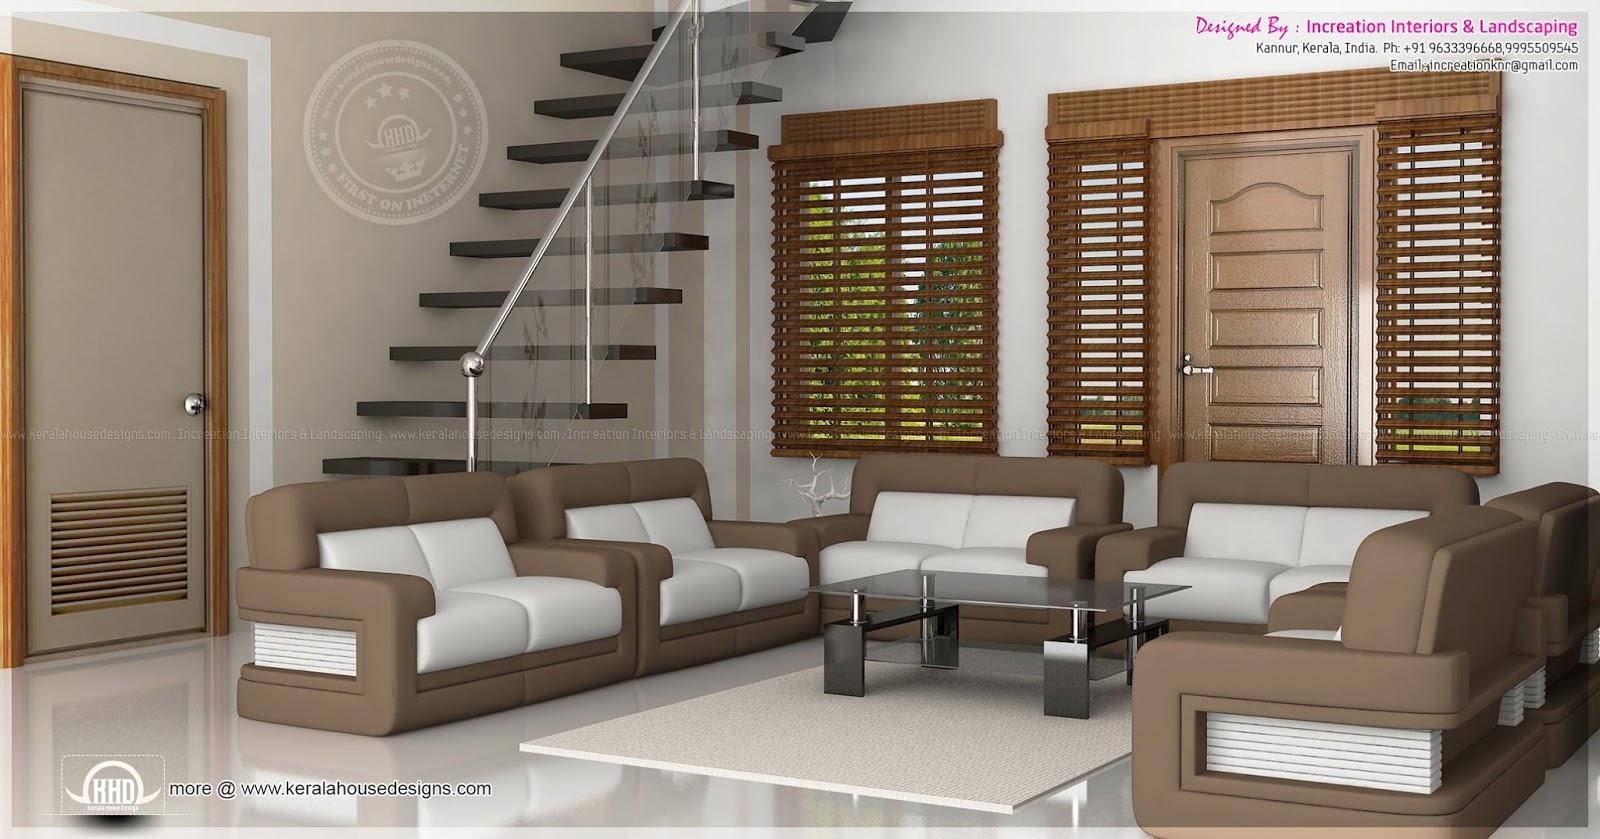 3d interiors by increation interiors kerala home design for Kerala house living room interior design